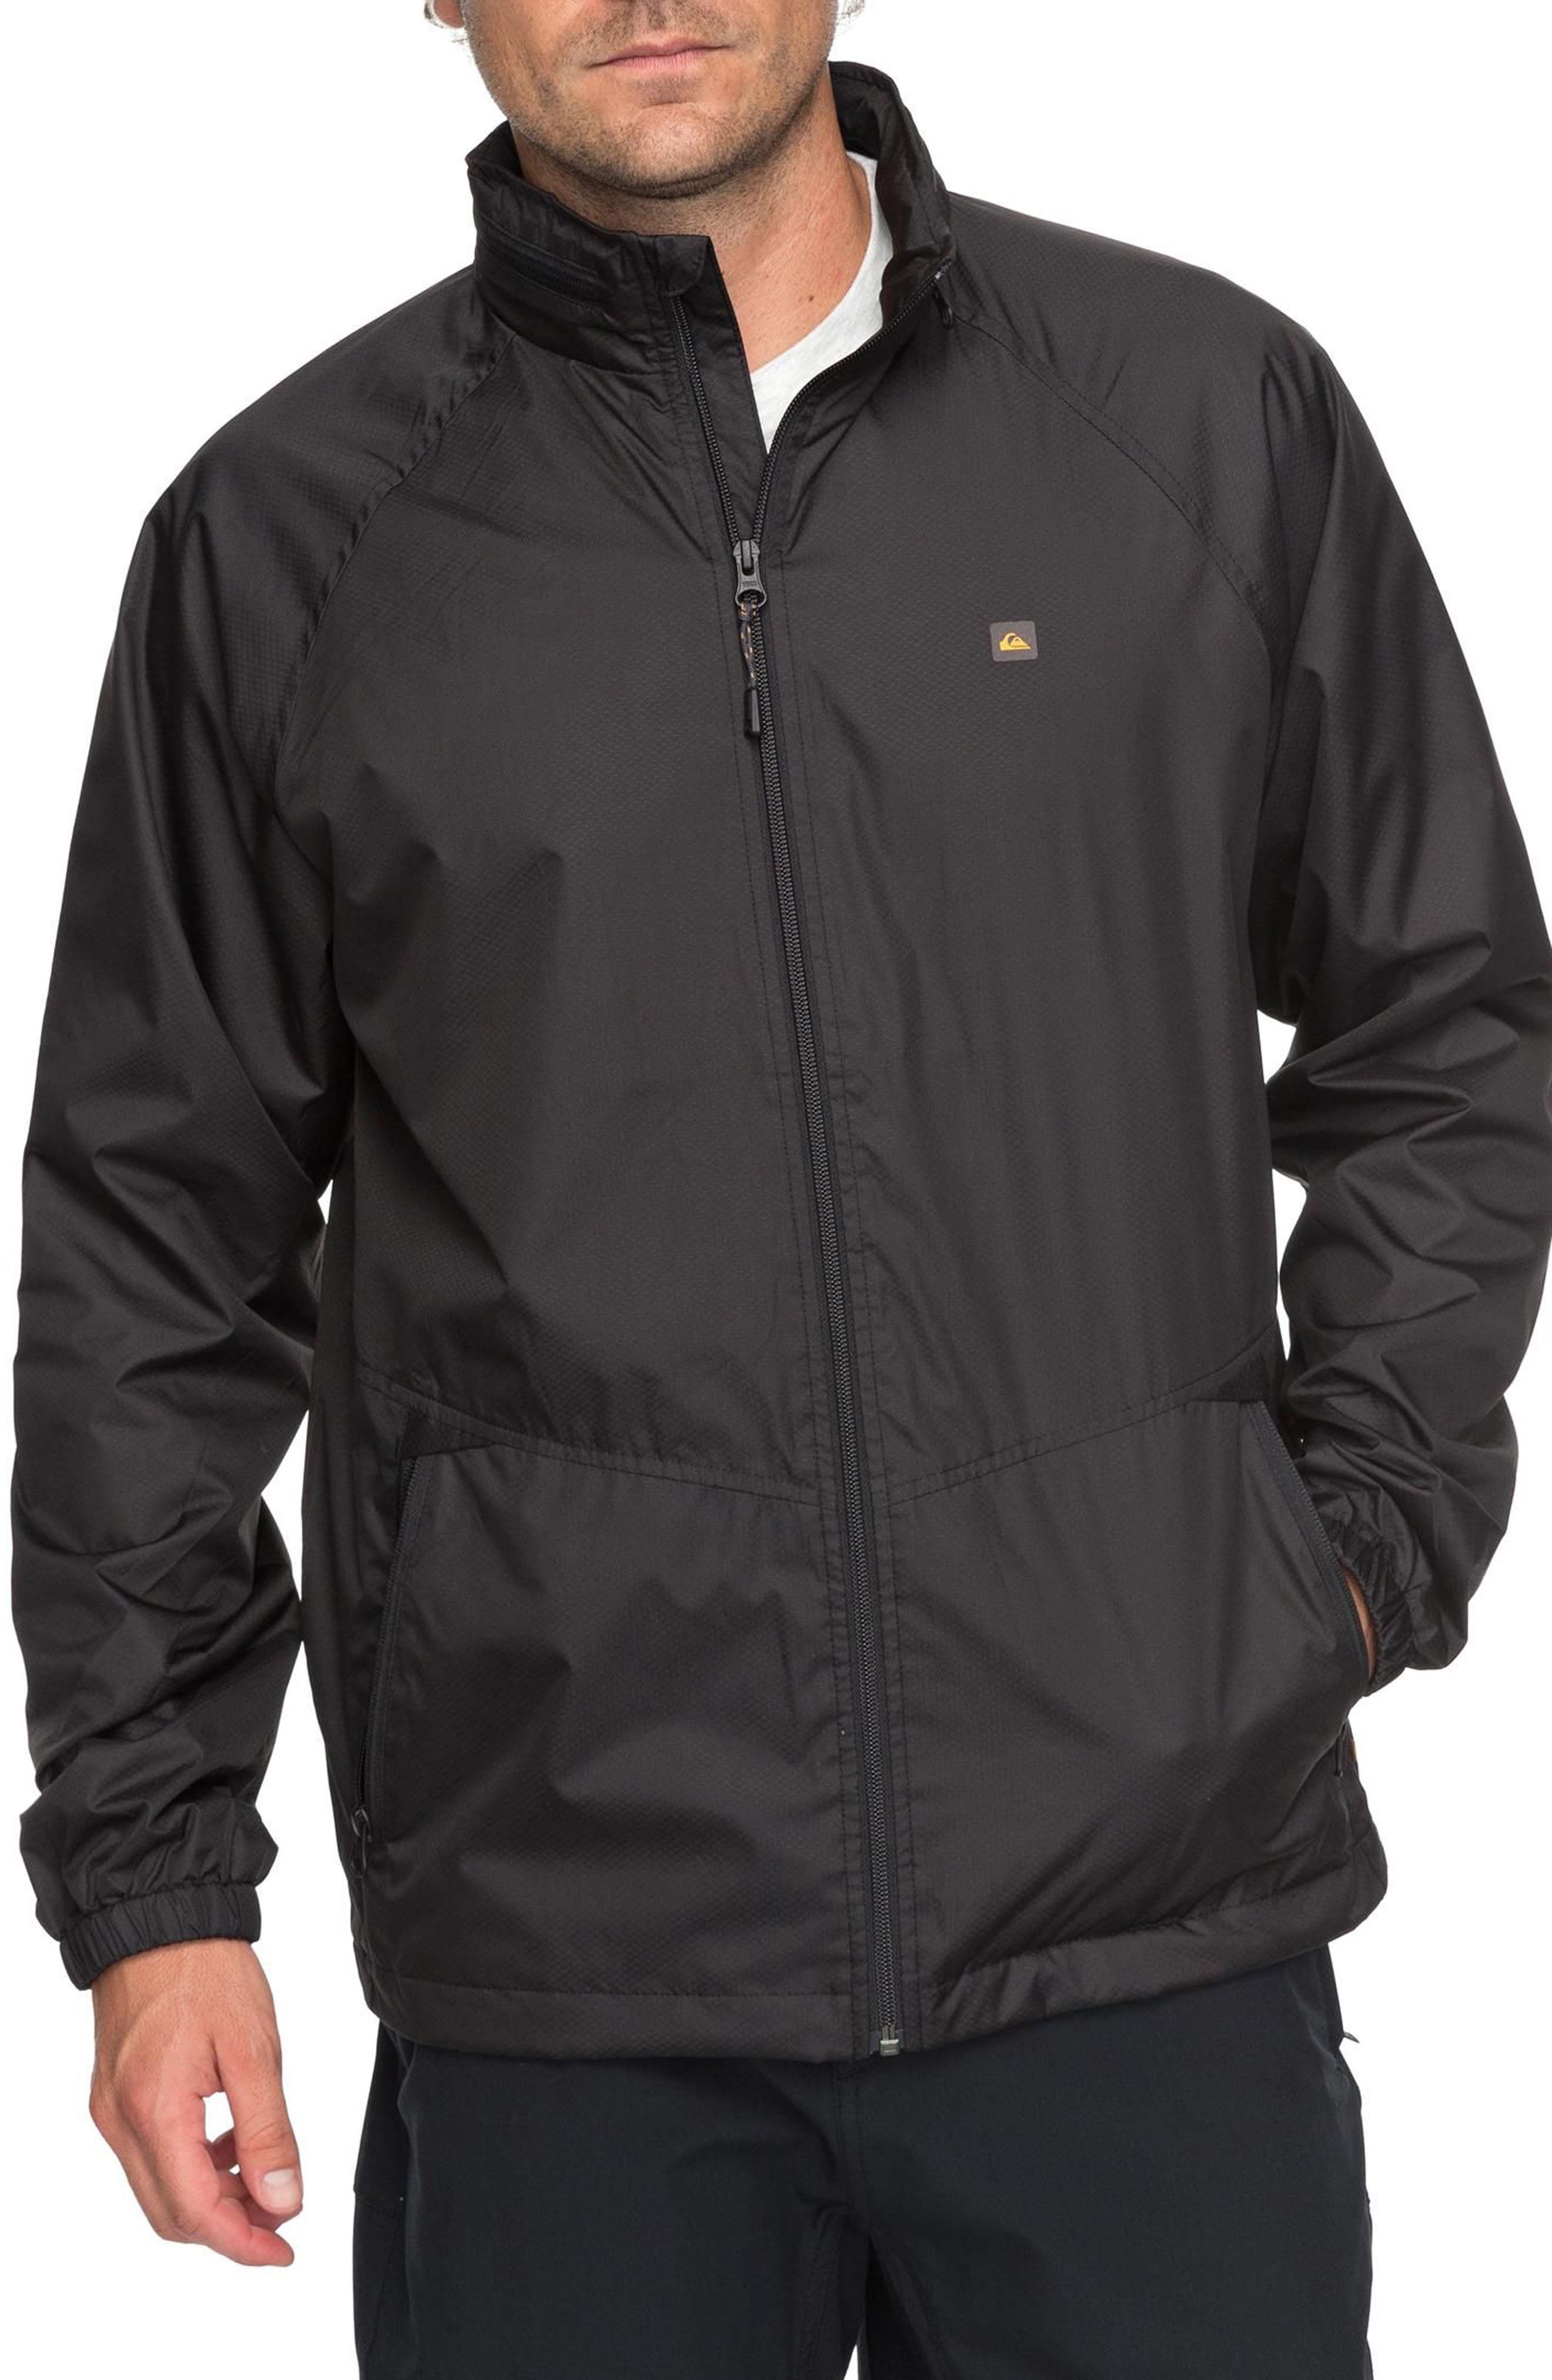 Shell Shock Water Repellent Windbreaker,                         Main,                         color, Black